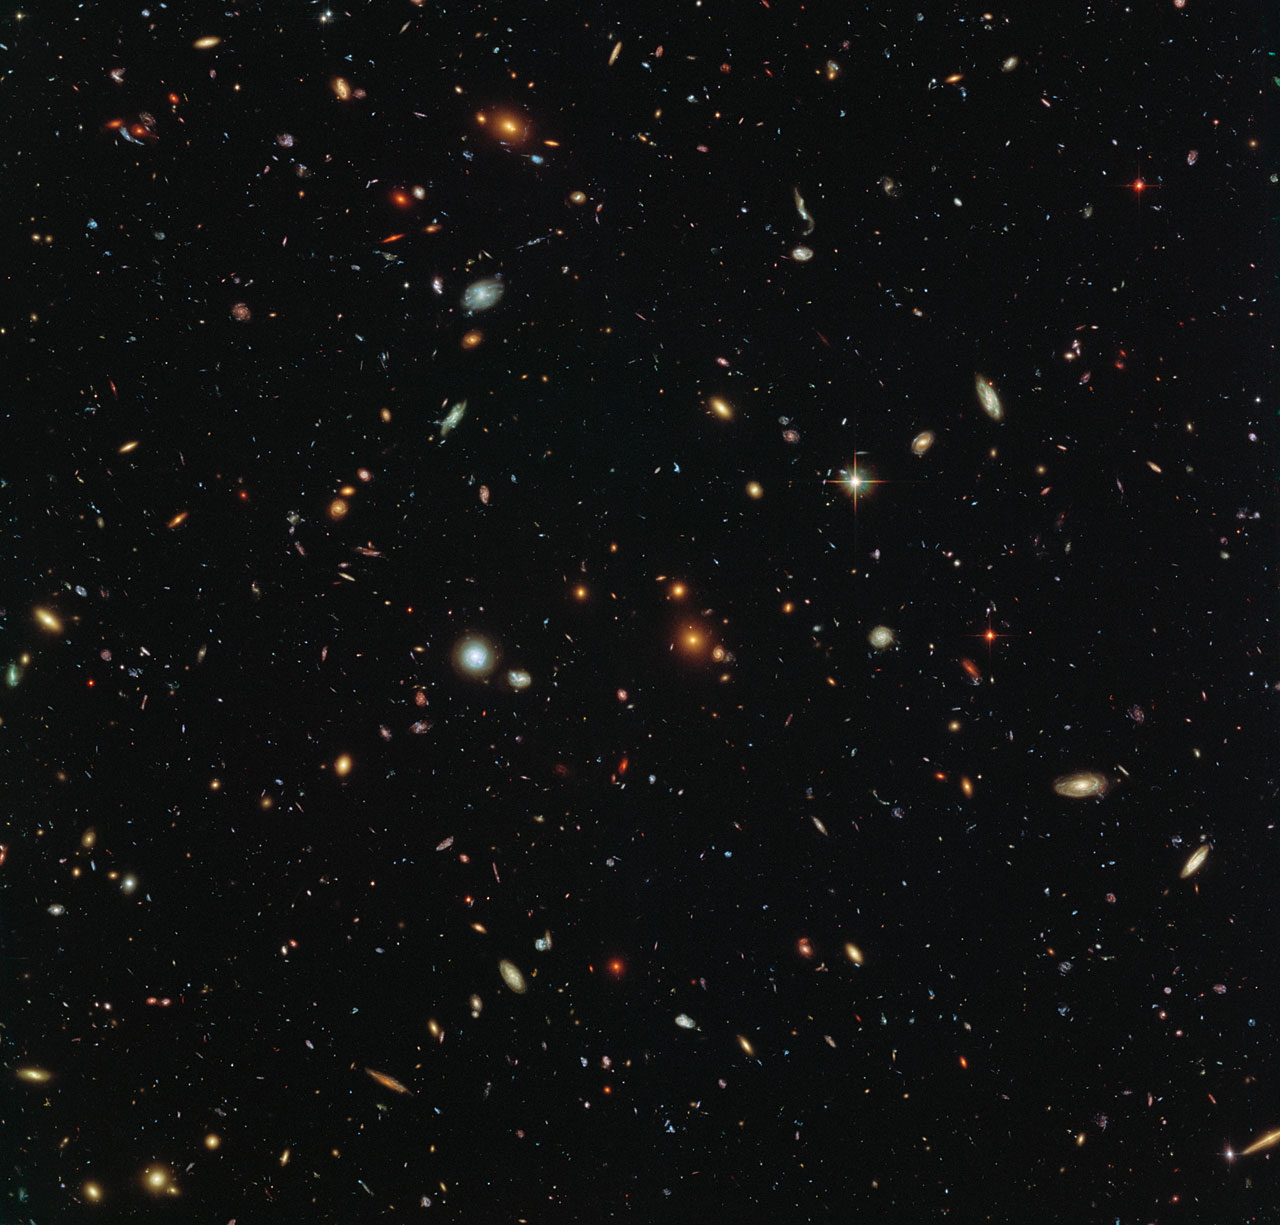 Hubble Sees a Legion of Galaxies | NASA